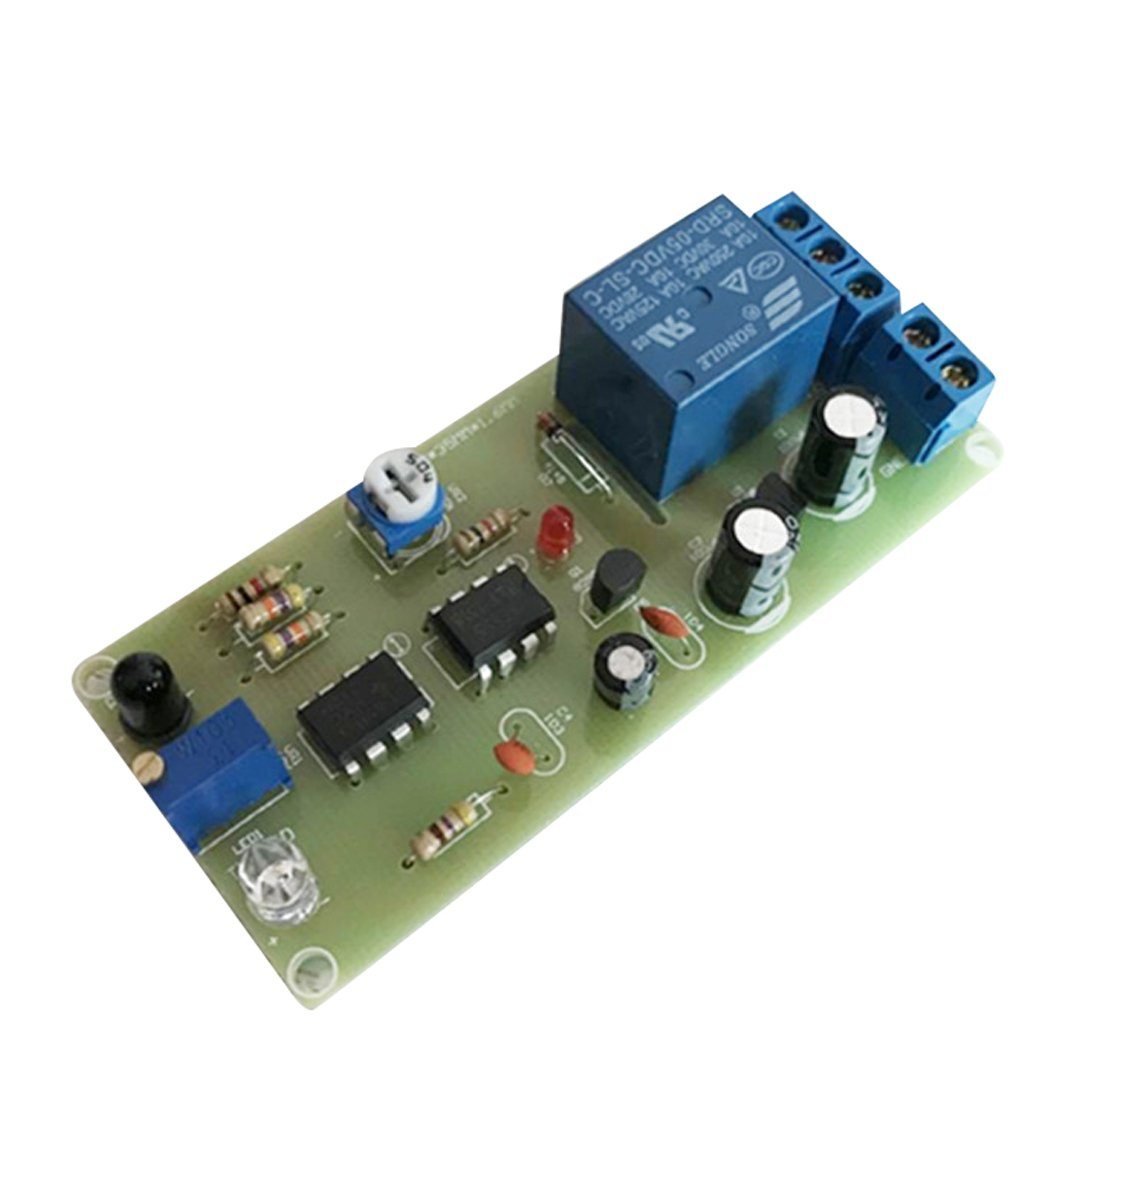 Hand Dryer Infrared Sensor Switch Assembled Kit DIY Automatic Faucet Control Module 12V PCB Board